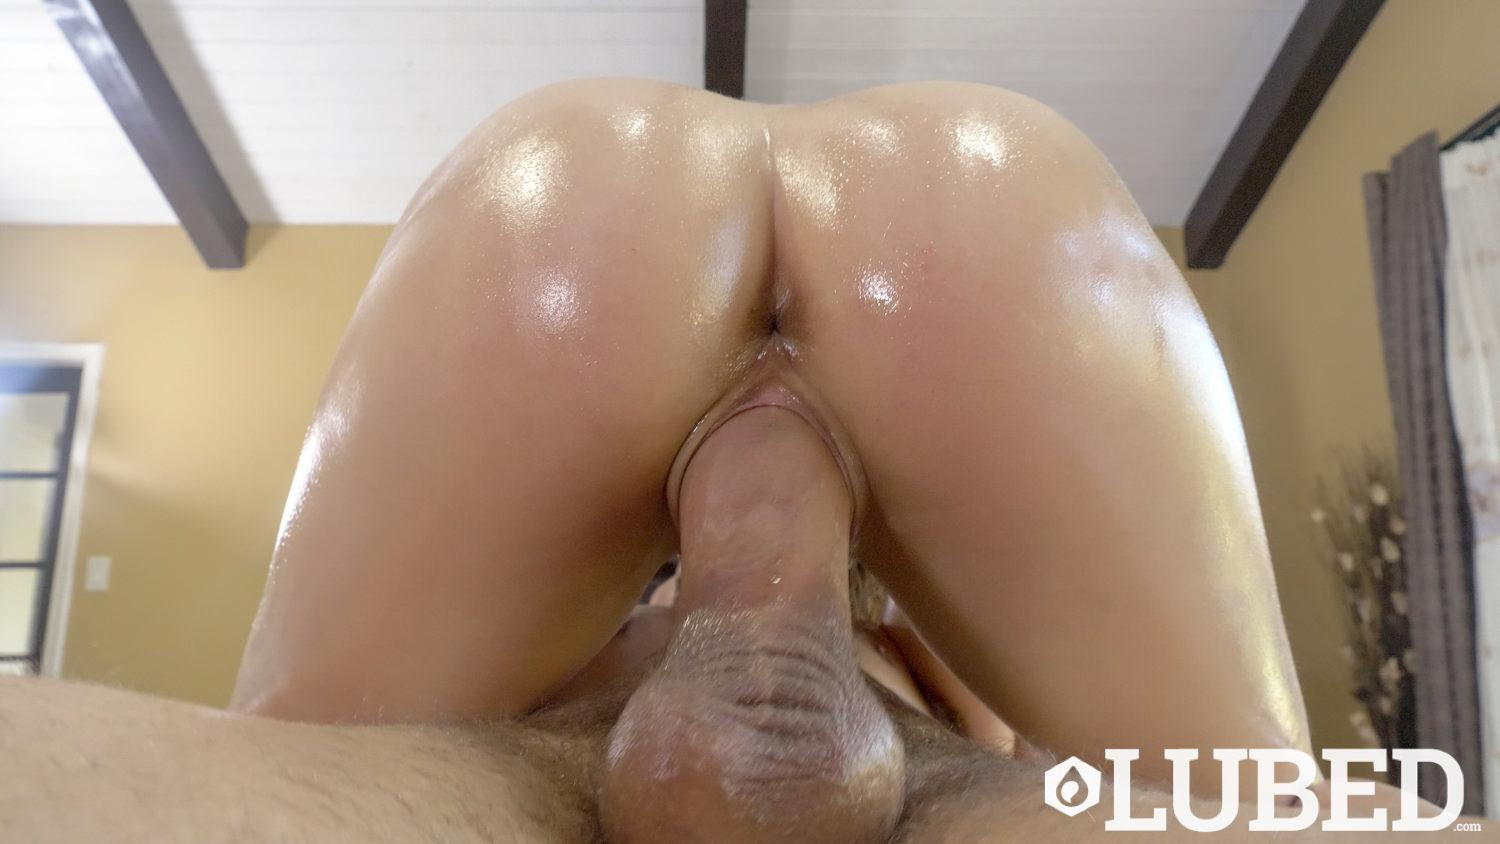 Teen Babe Kristen Scott Gets Oiled Up And Gives Hot Pov -3393